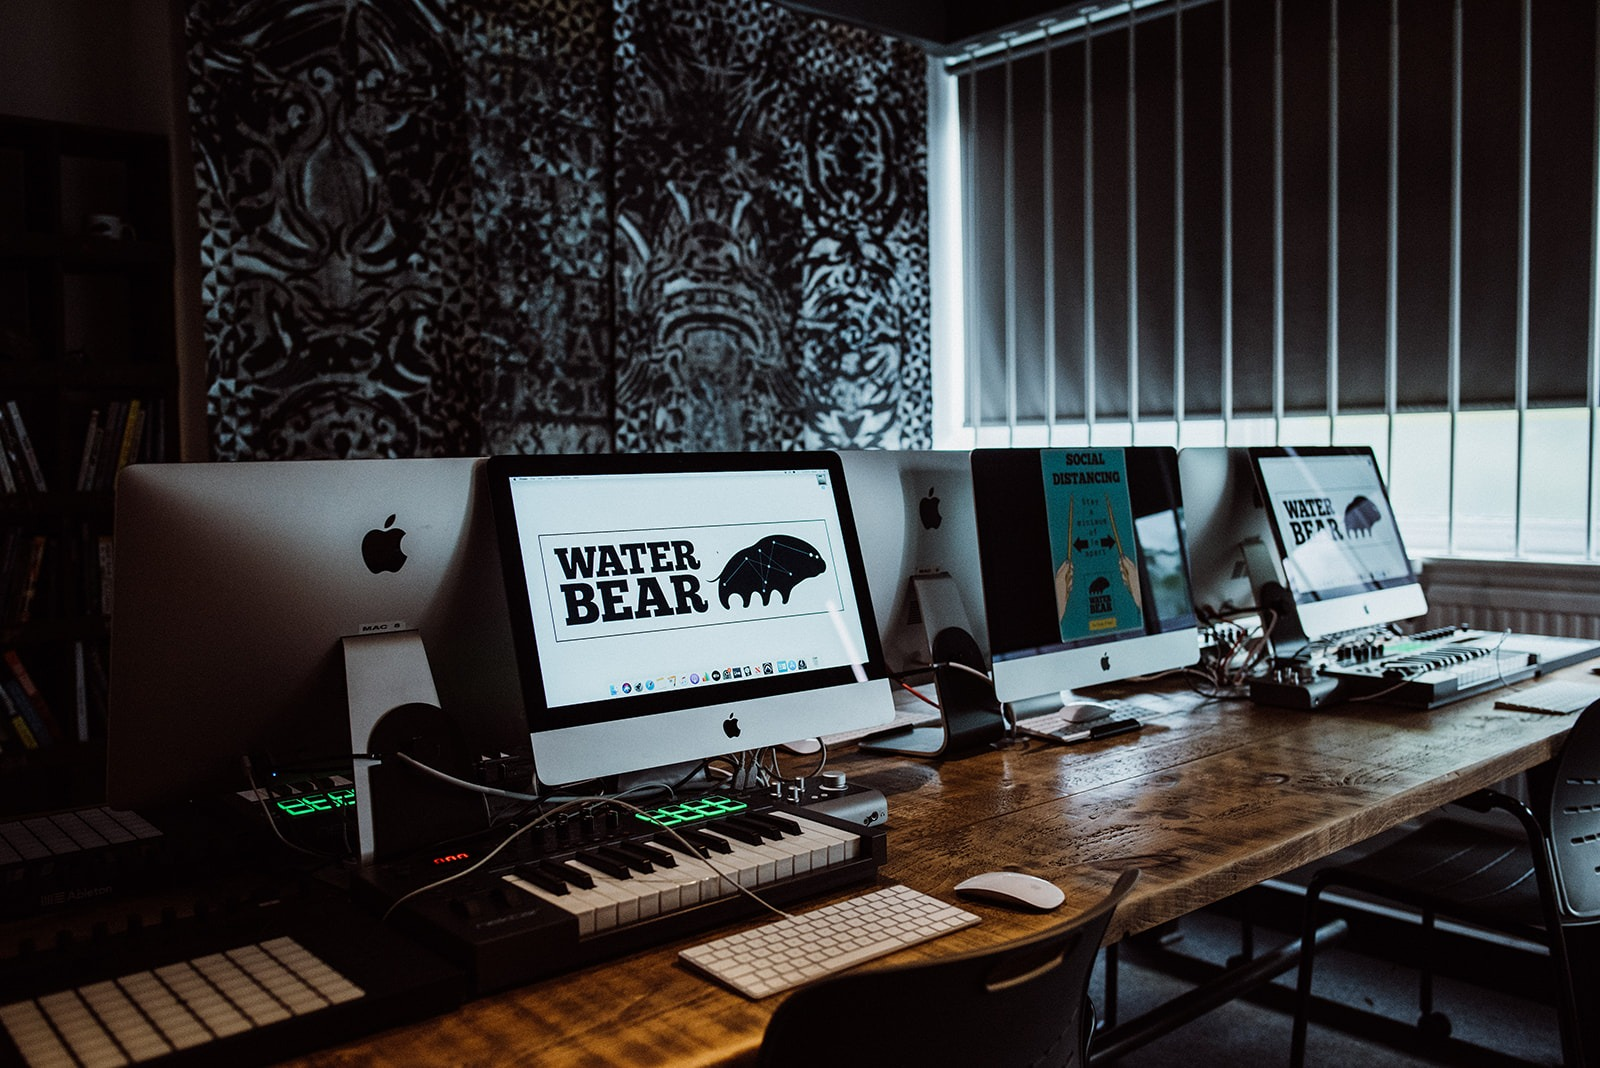 Toolroom & WaterBear Announce New Degree in Electronic Music & Business